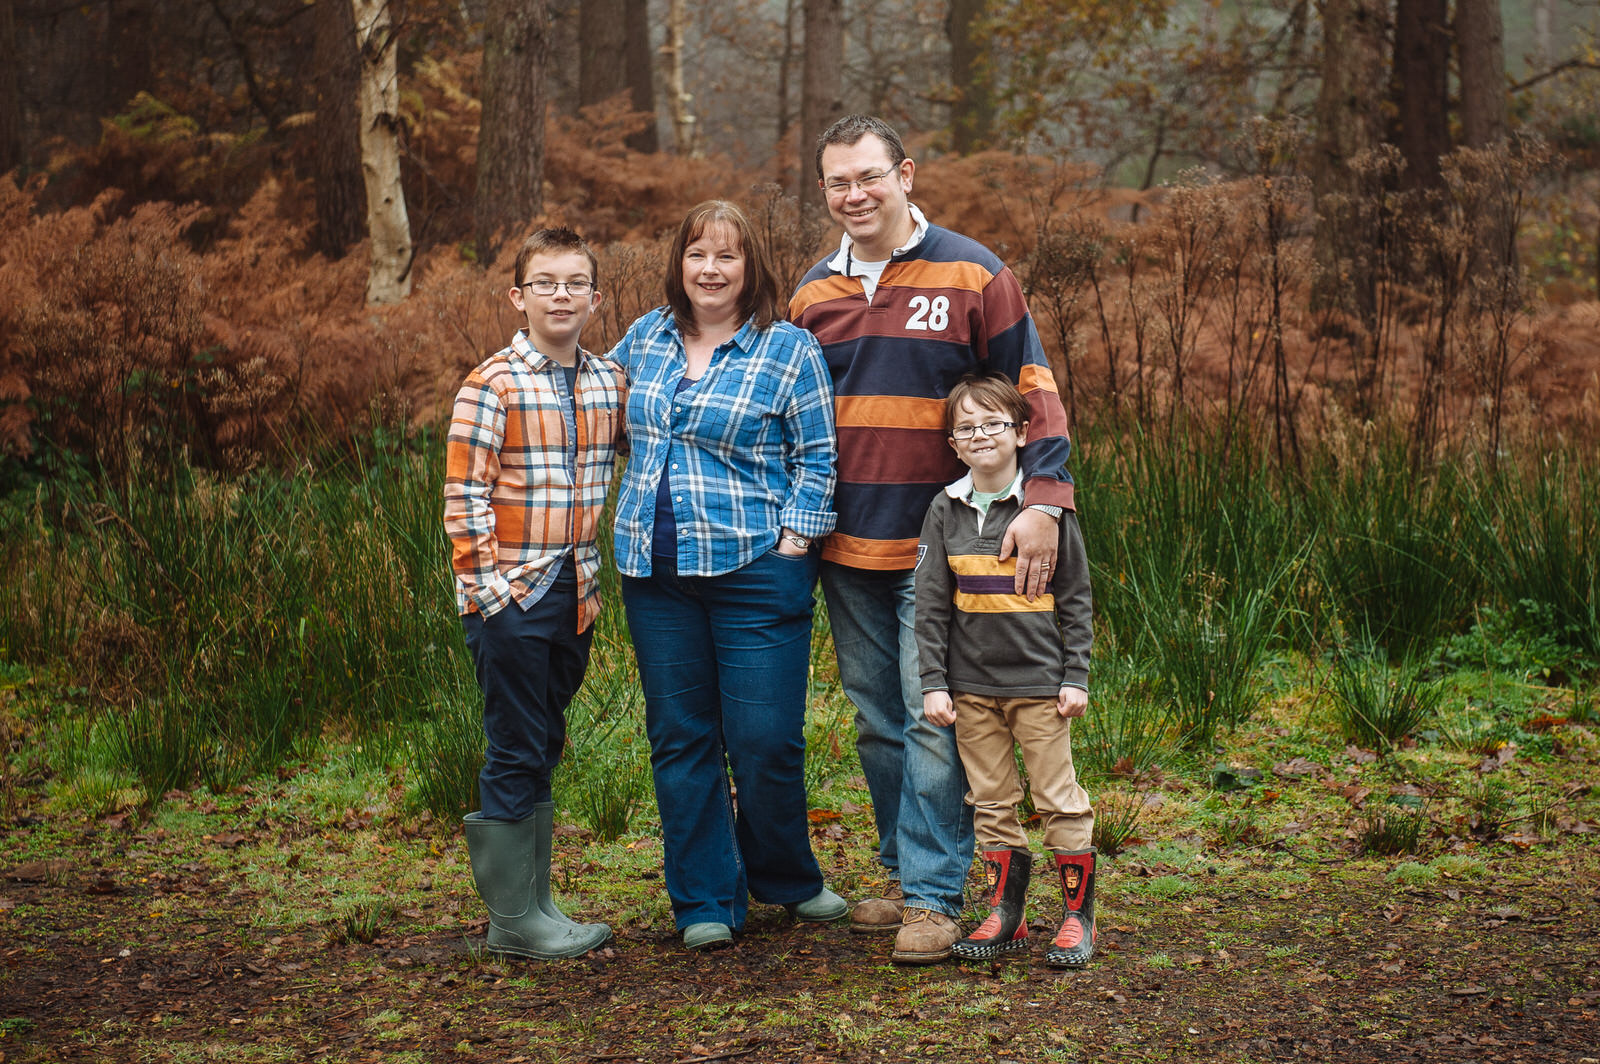 Children's and family photography near Pulborough Sussex